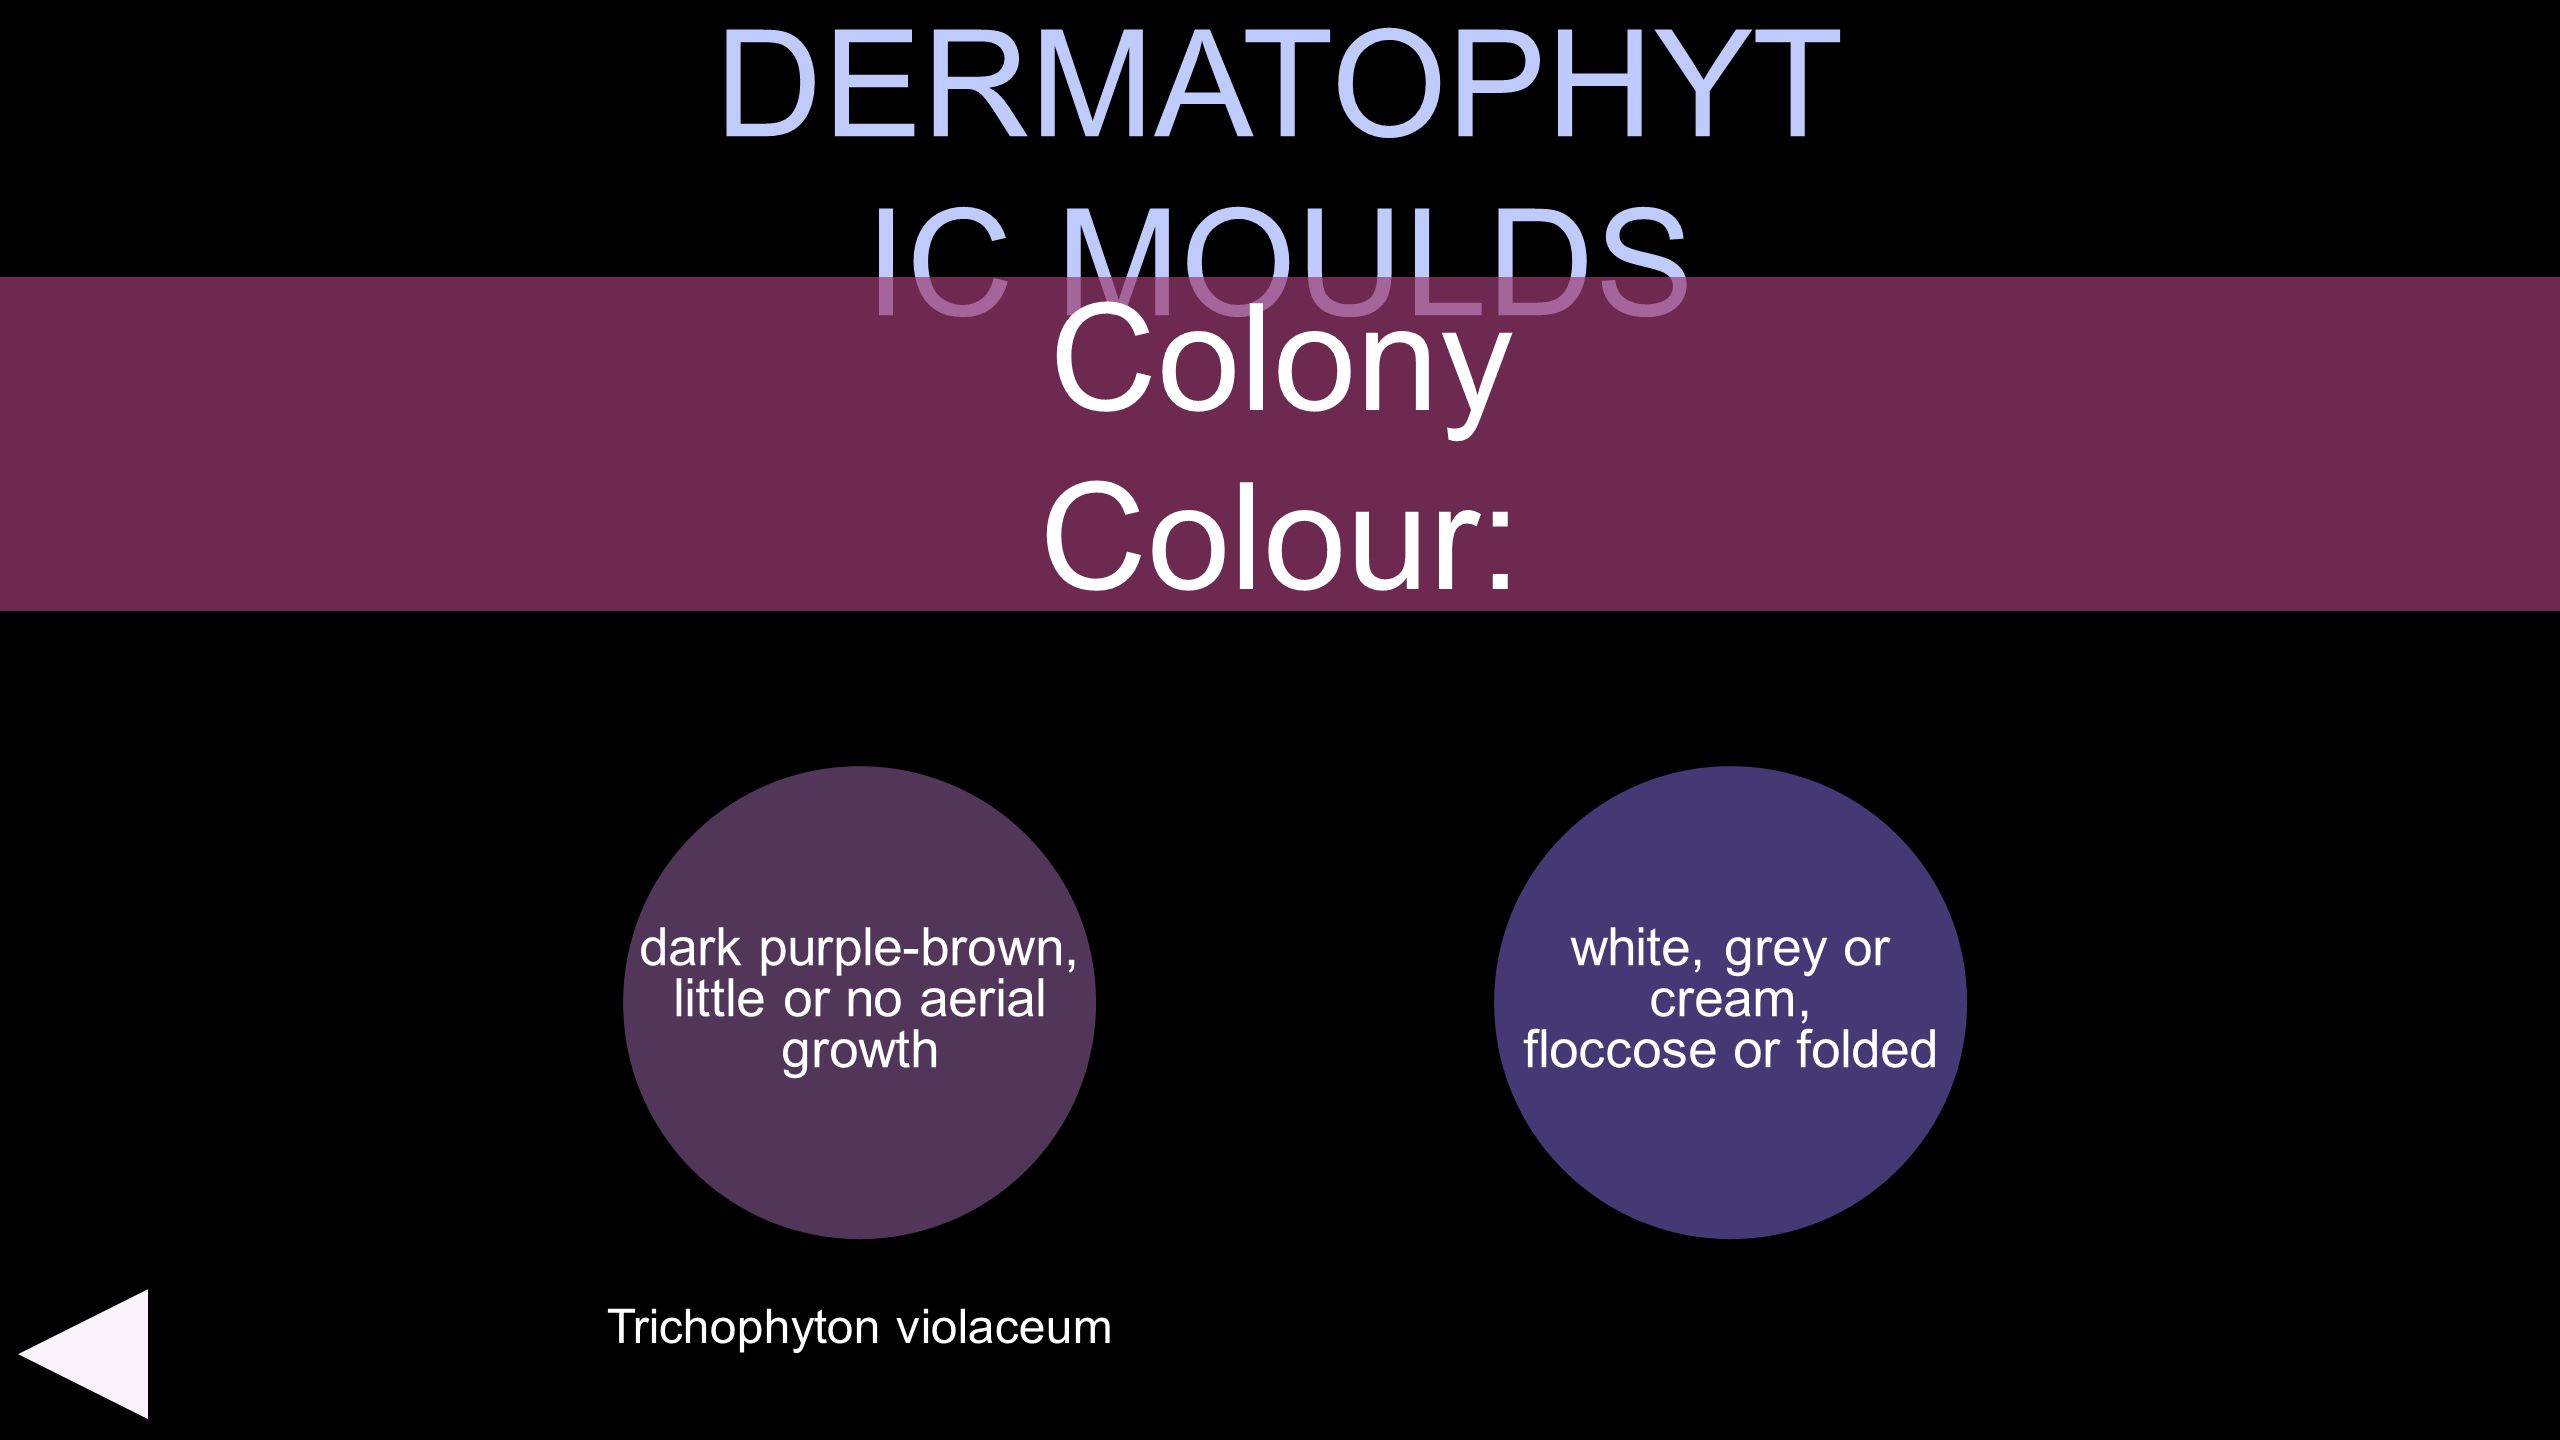 DERMATOPHYT IC MOULDS dark purple-brown, little or no aerial growth Colony Colour: white, grey or cream, floccose or folded Trichophyton violaceum